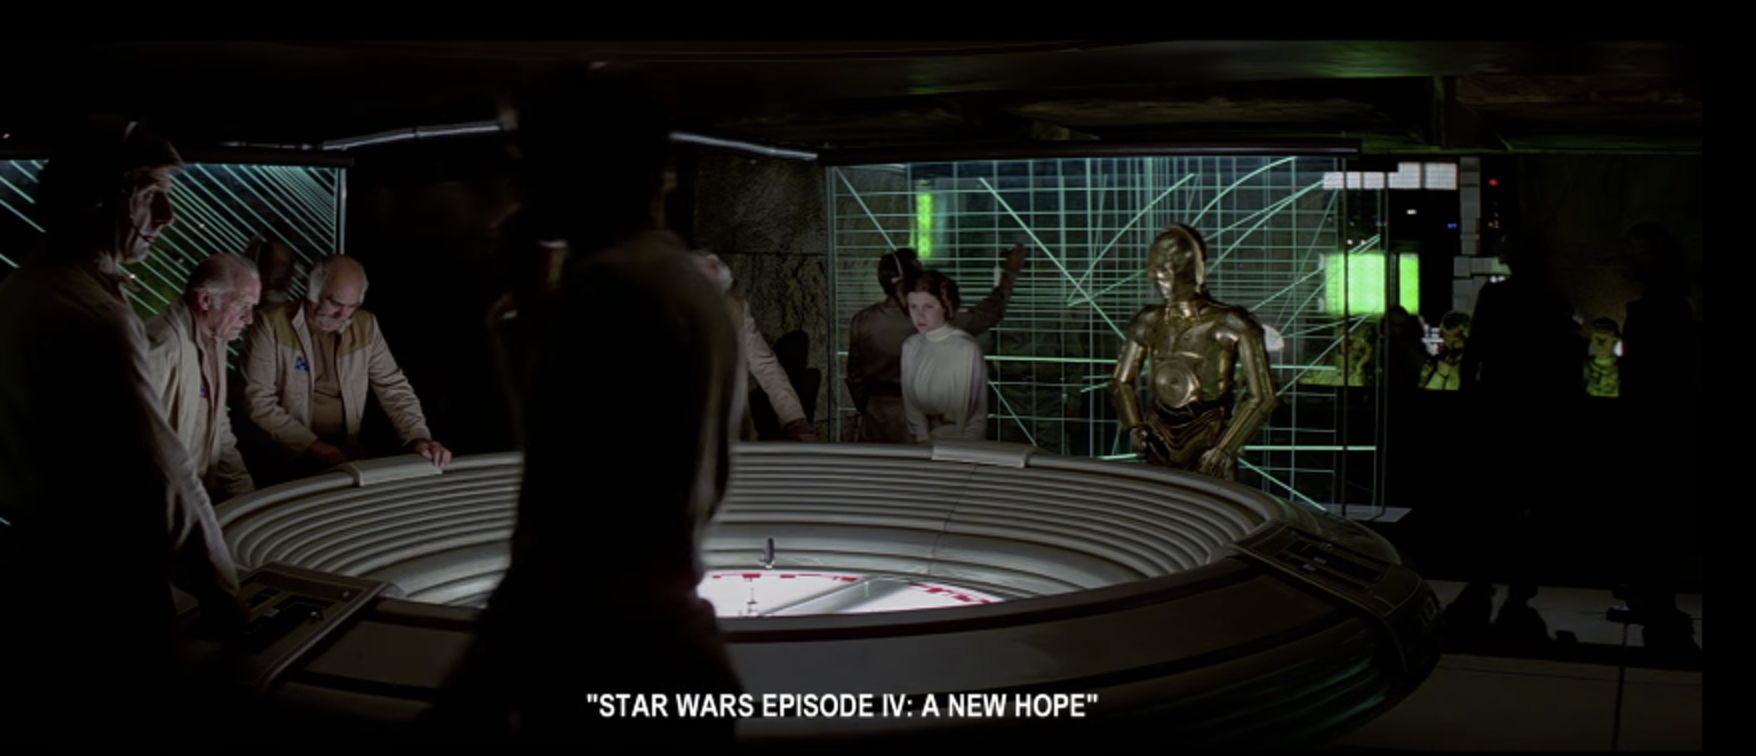 Yavin briefing room in 'Star Wars Episode IV: A New Hope'